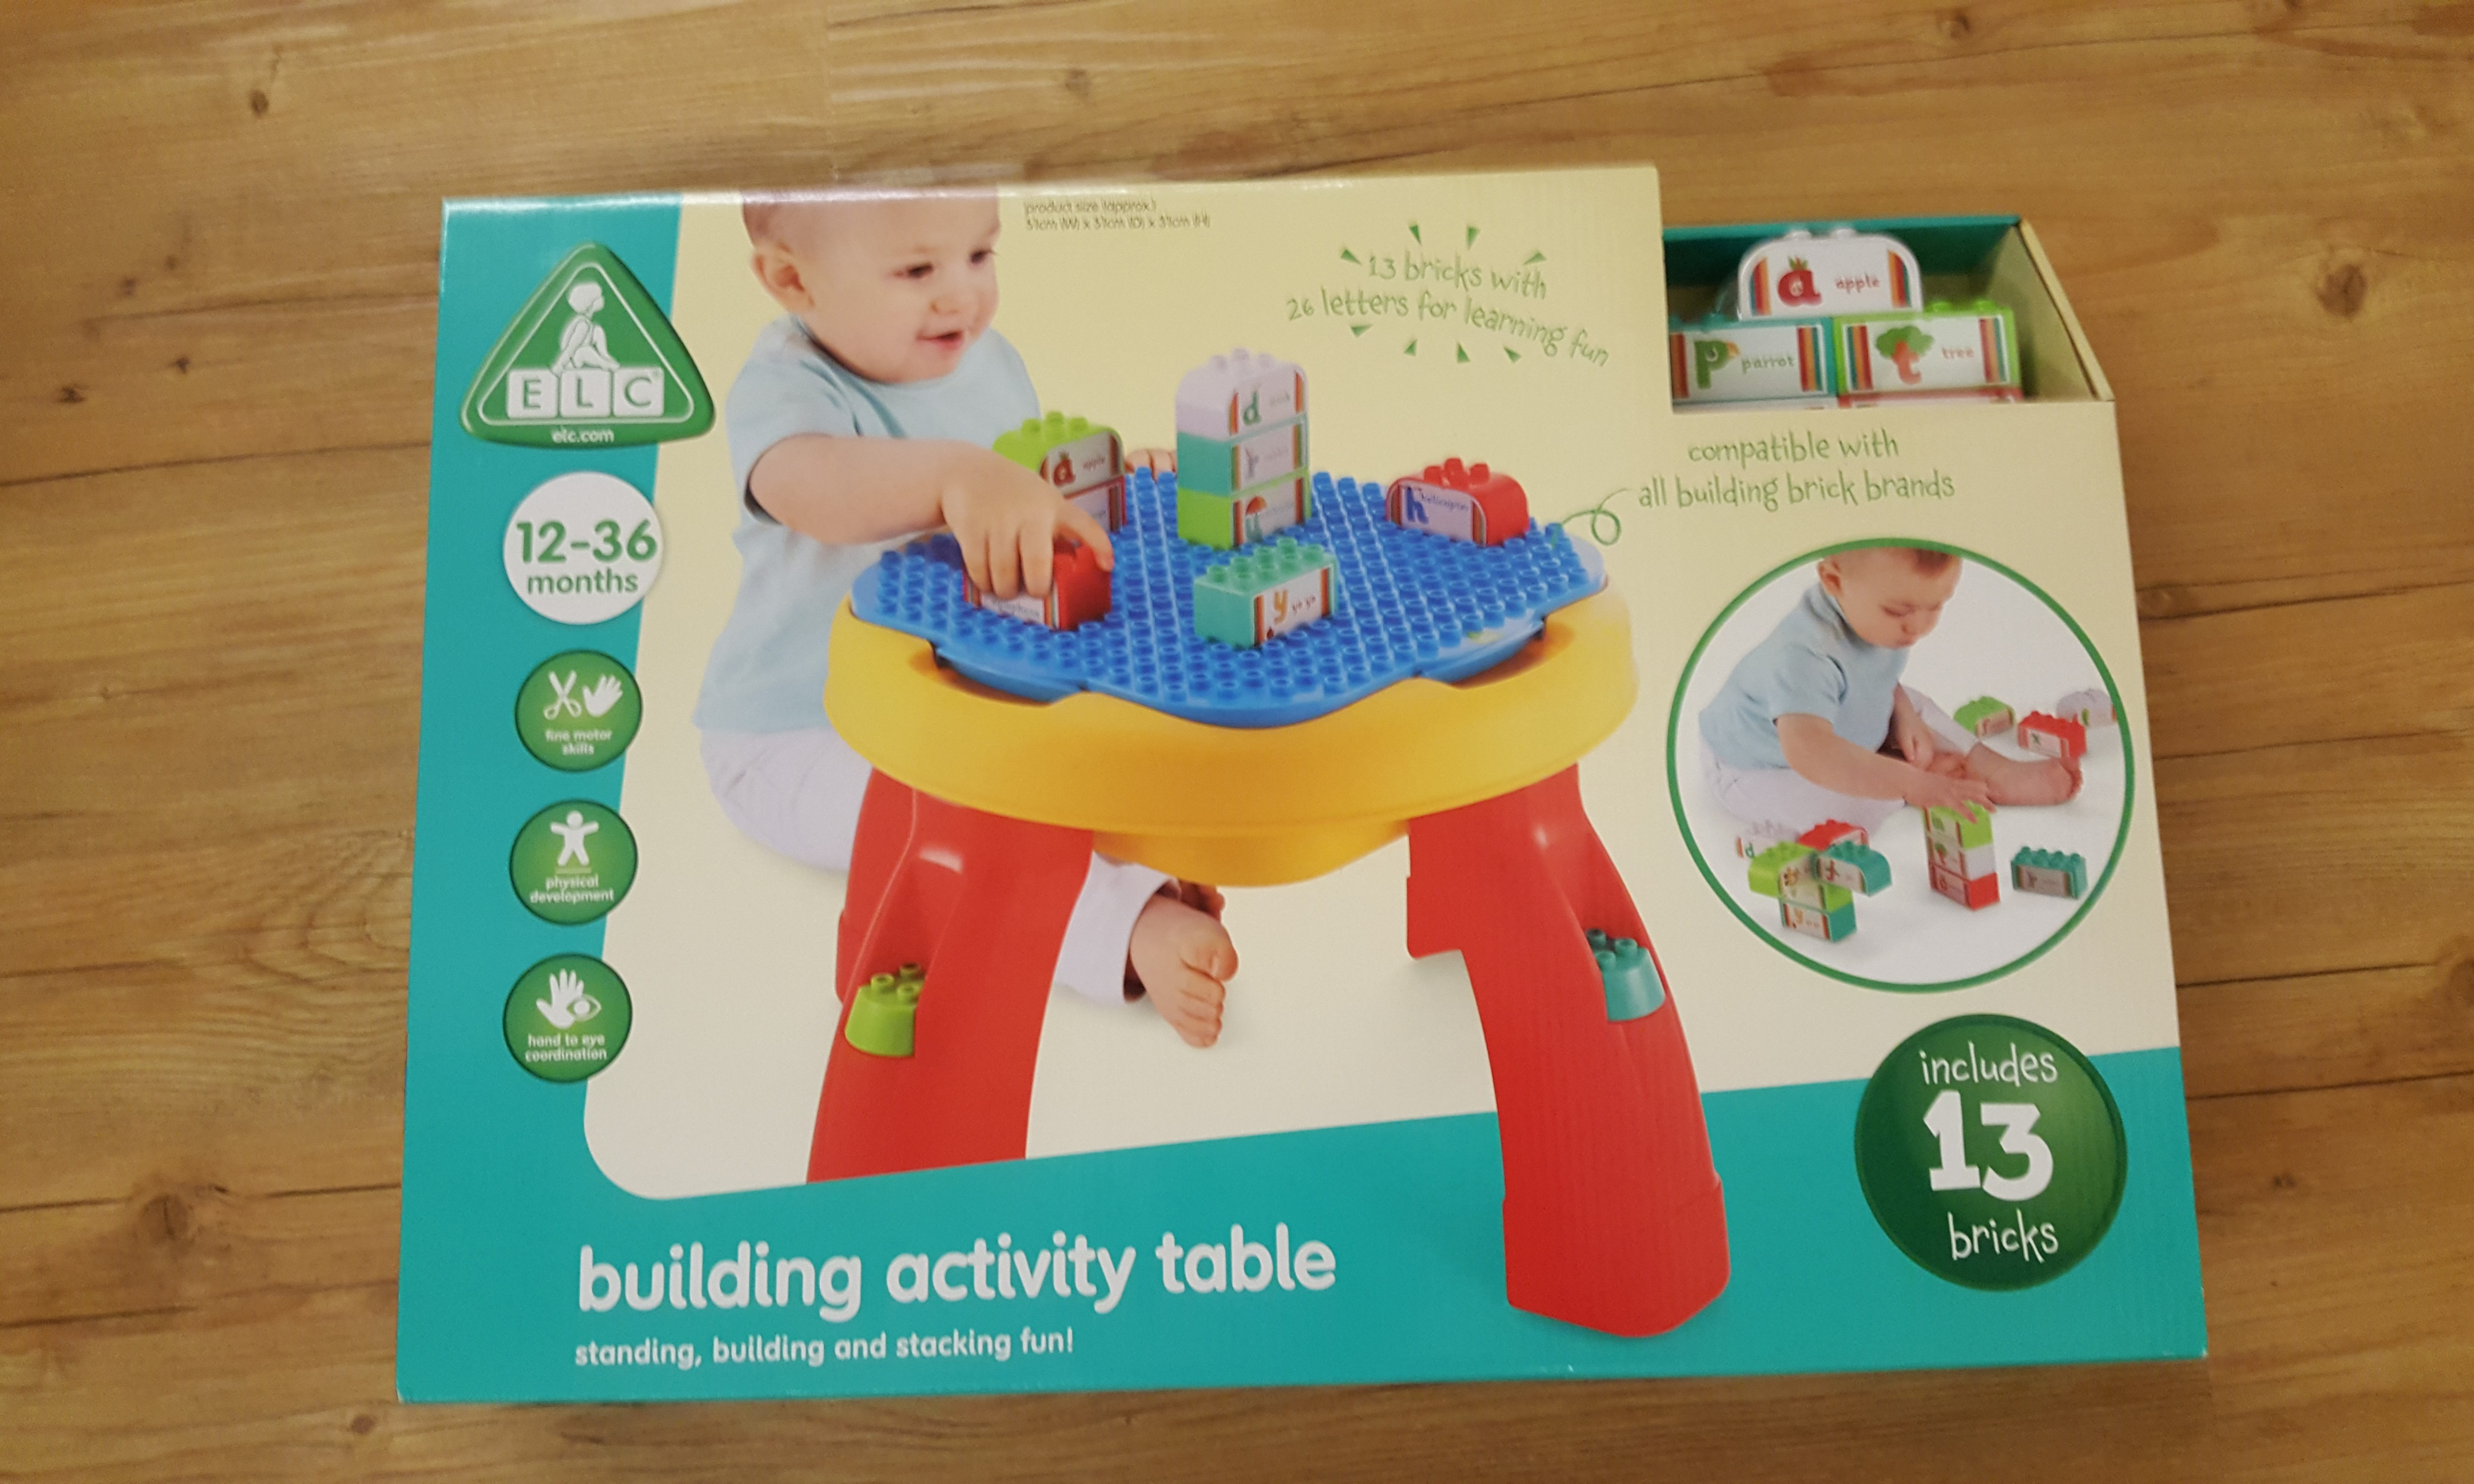 Early Learning Centre Elc Wooden Activity Table Baby Love Light And Sounds 130928 Room Studio Of Activities For Babys Multicoloured Cube Photo